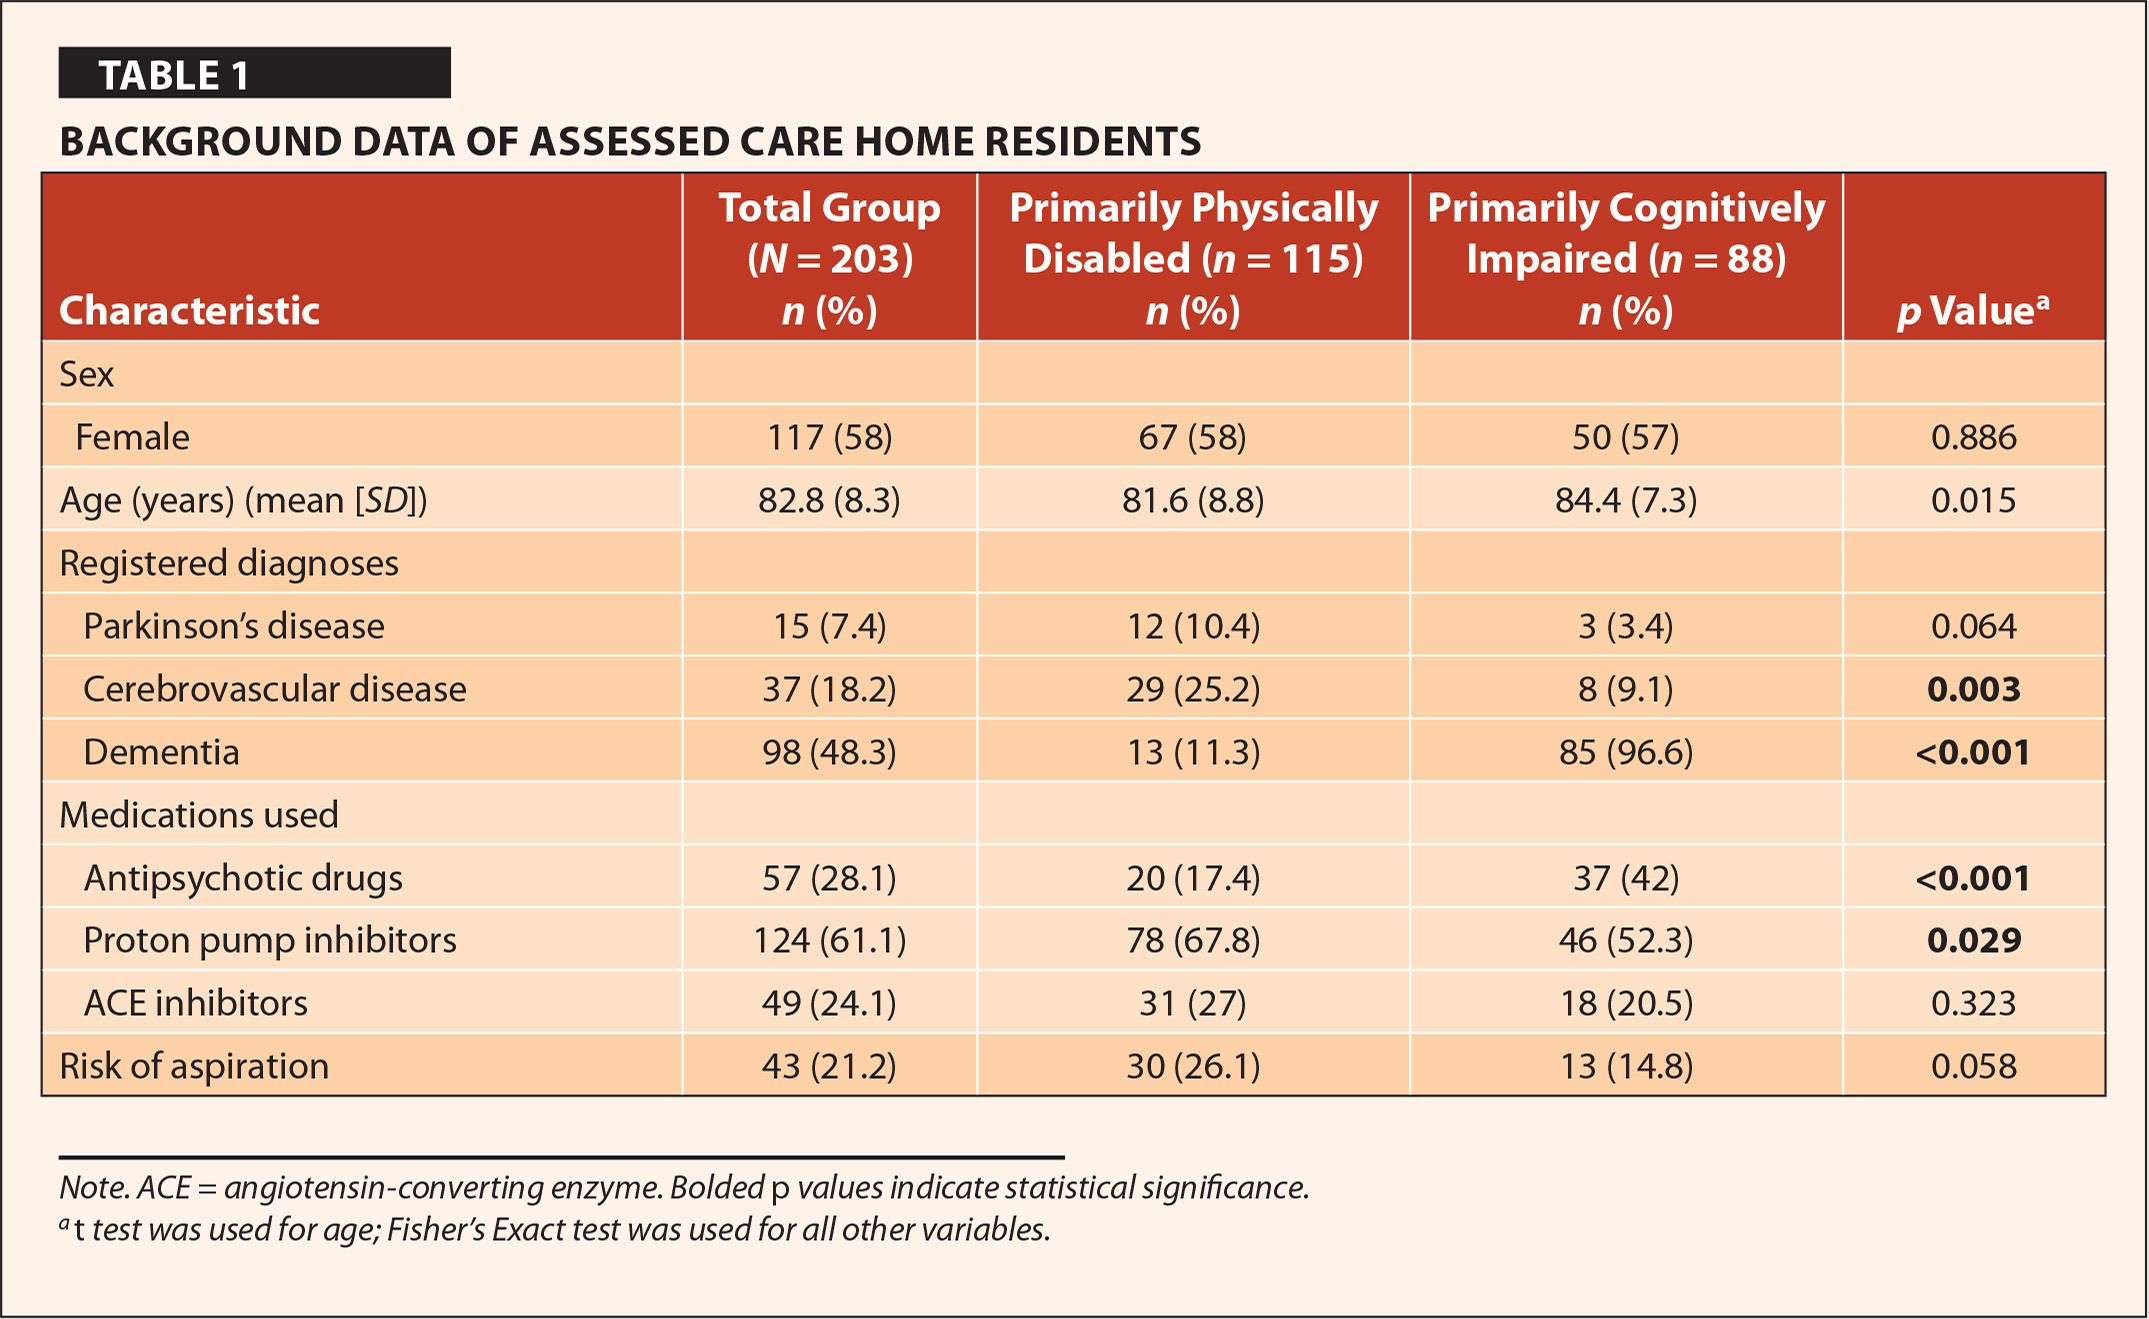 Background Data of Assessed Care Home Residents